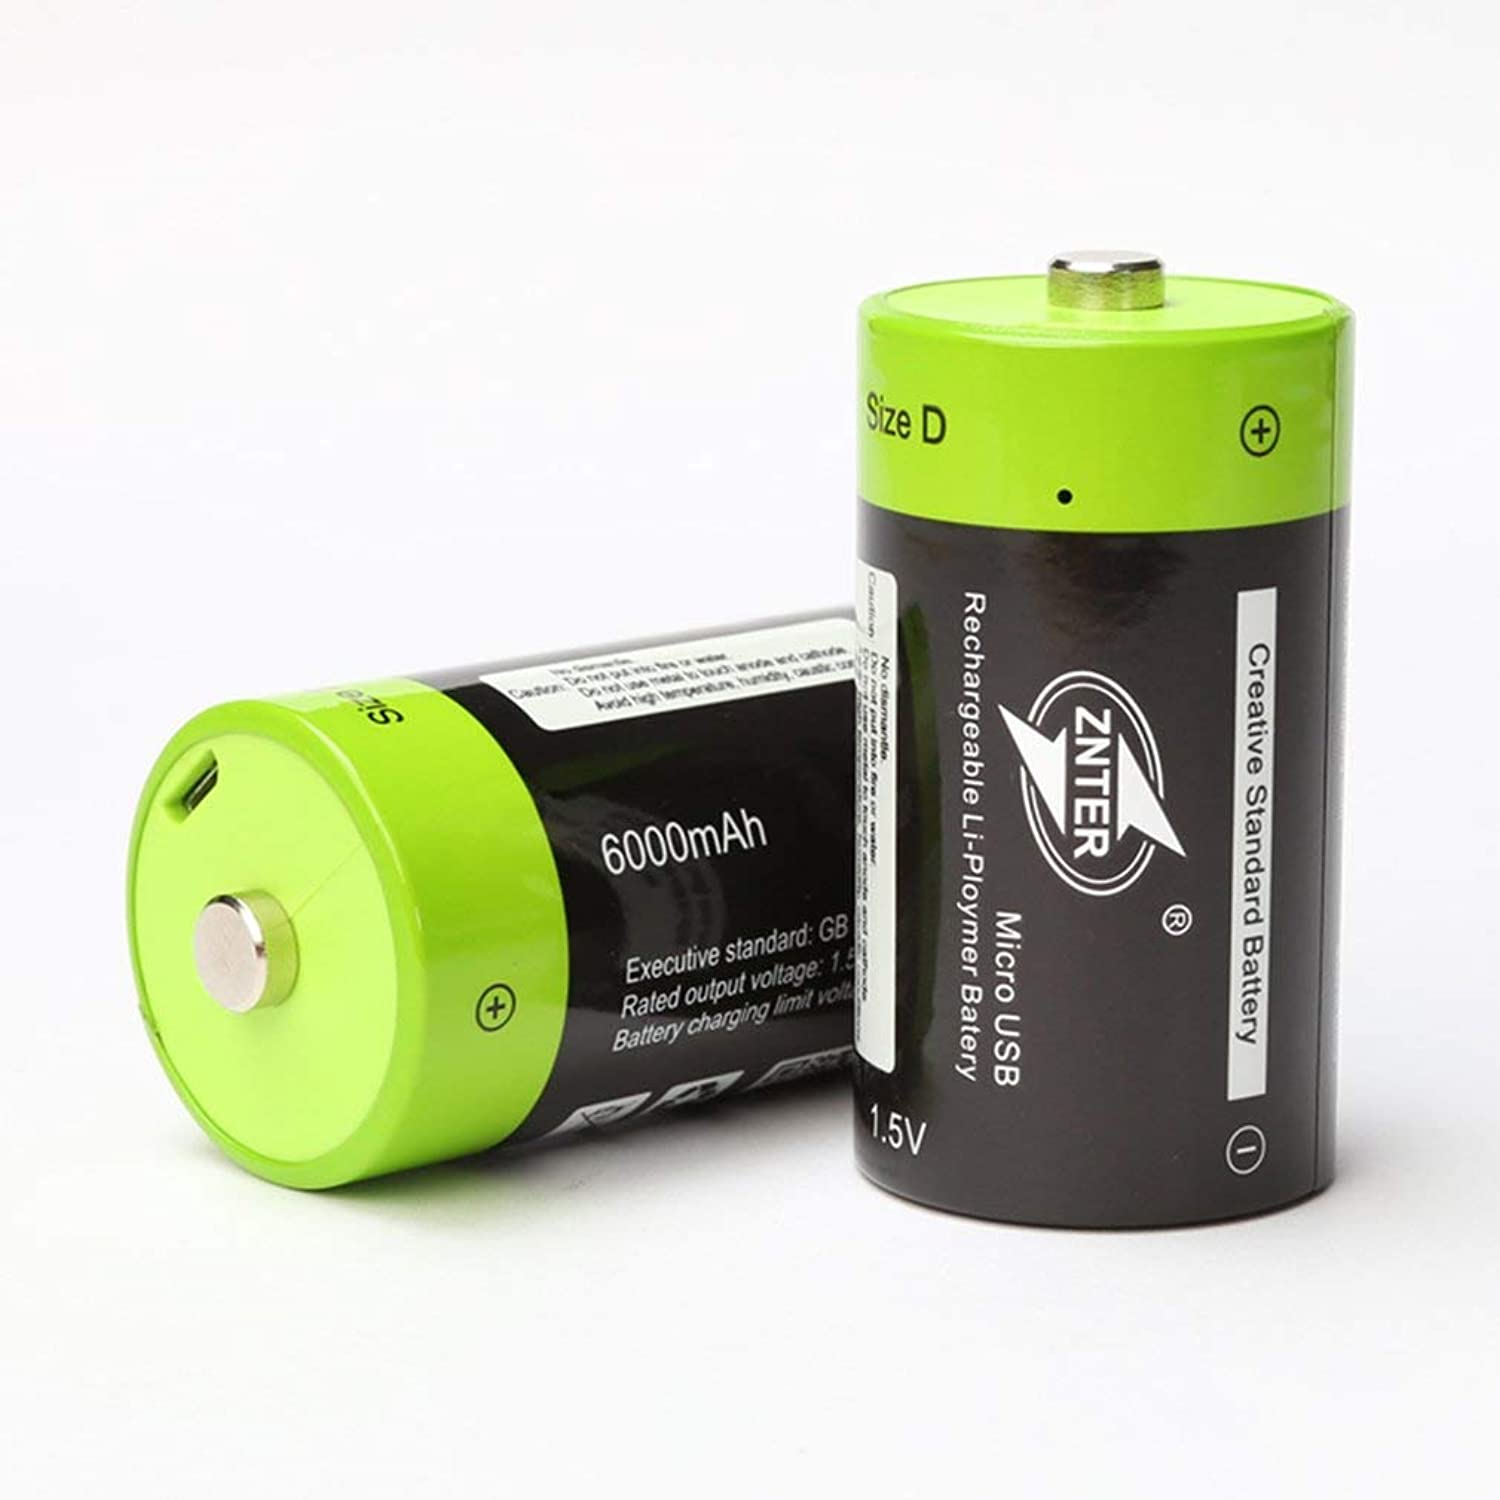 ZNTER ZNT11R 1pcs 2pcs 1.5V 6000mAh USB Rechargeable D Battery Recycle Multifunctional Charged Lithium Polymer Play and Plug